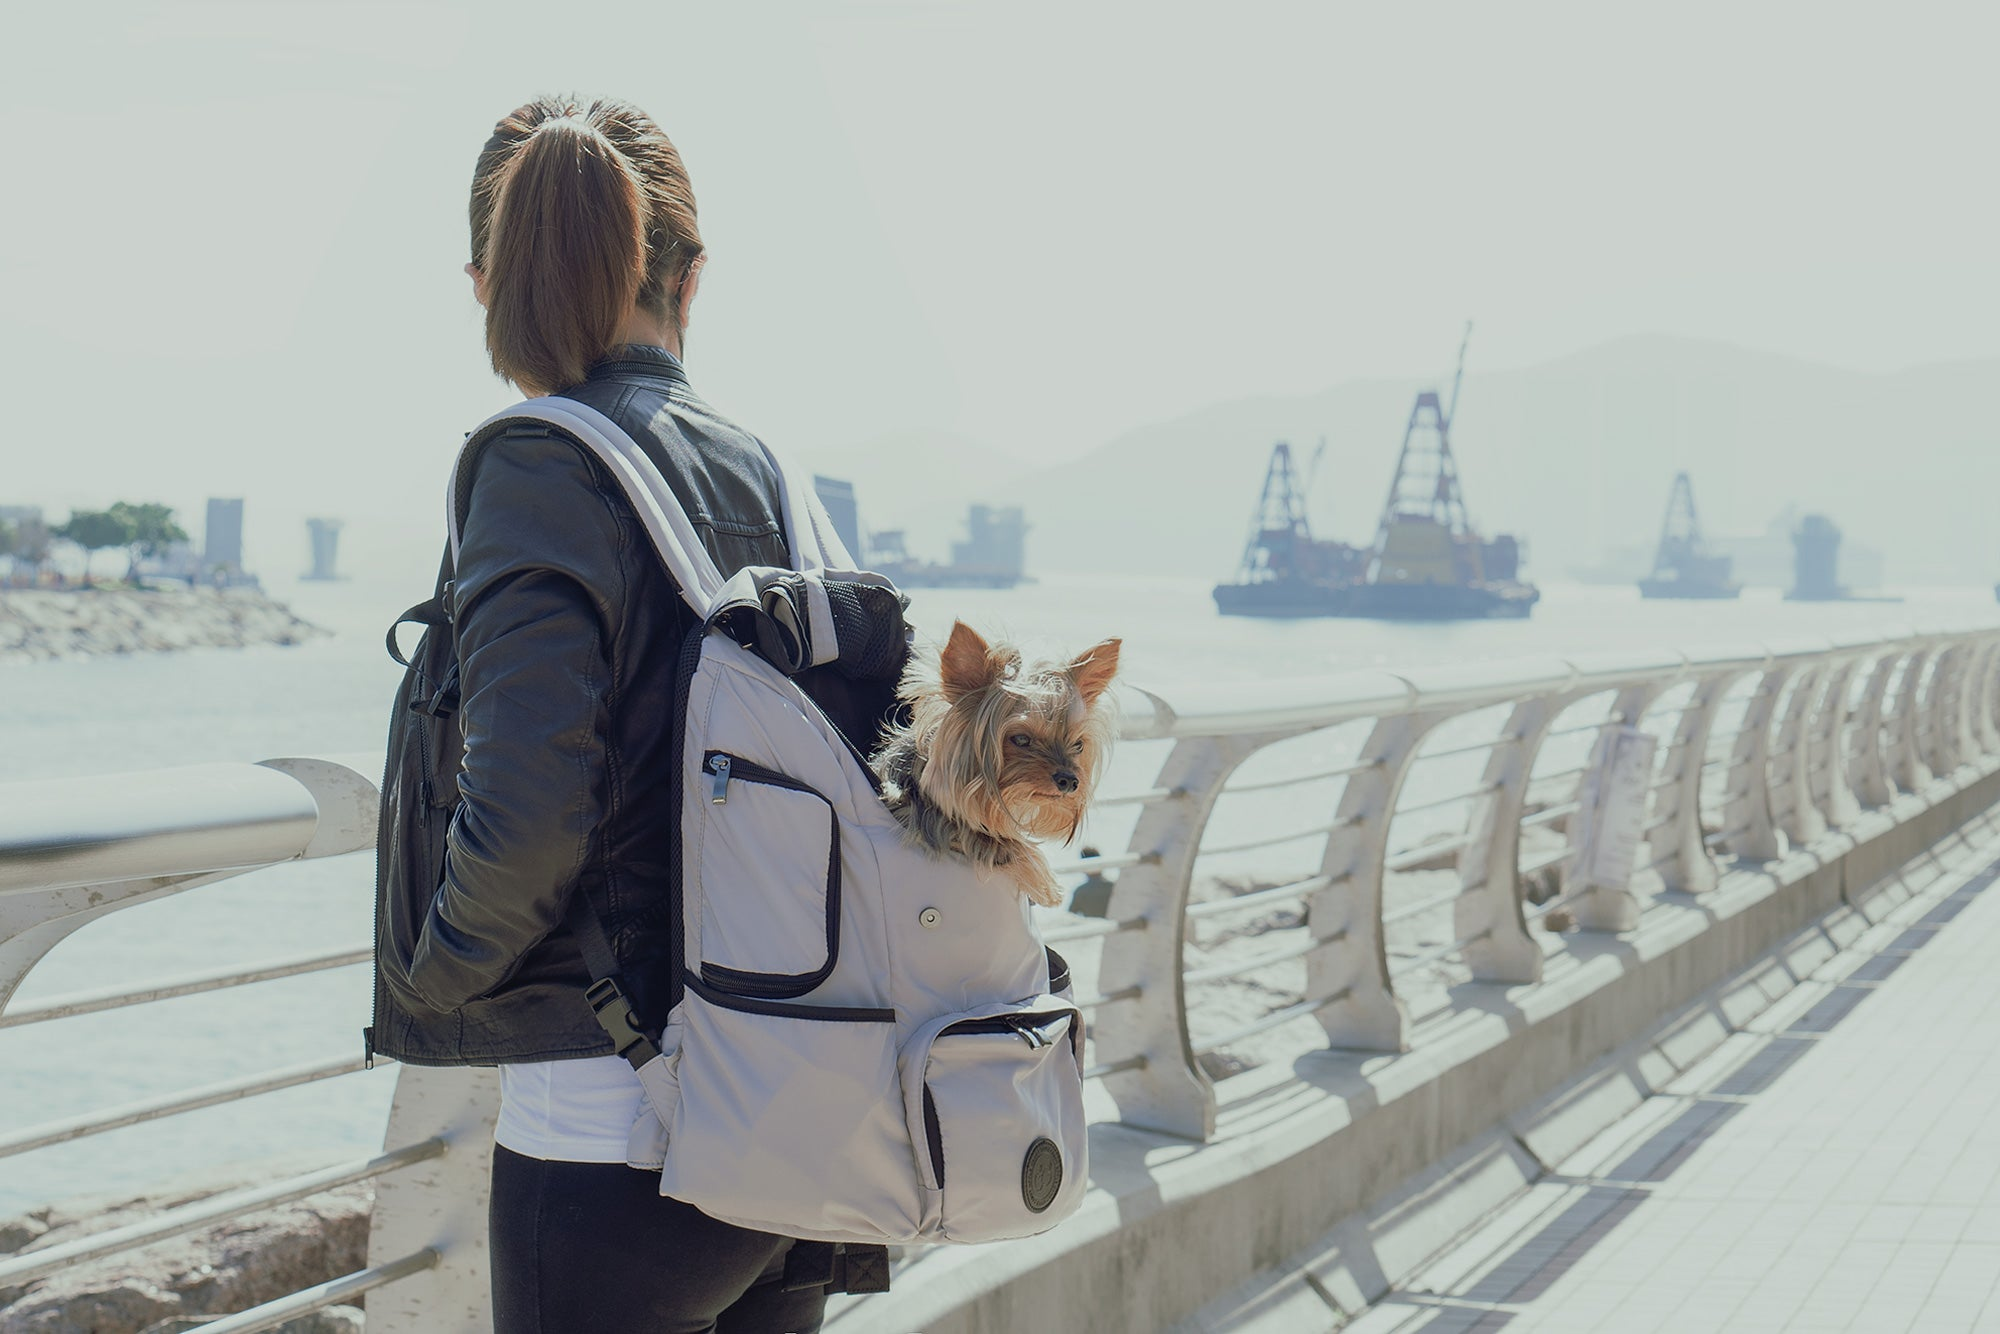 model carrying backpack pet carrier with her dog at the waterfront Promenade